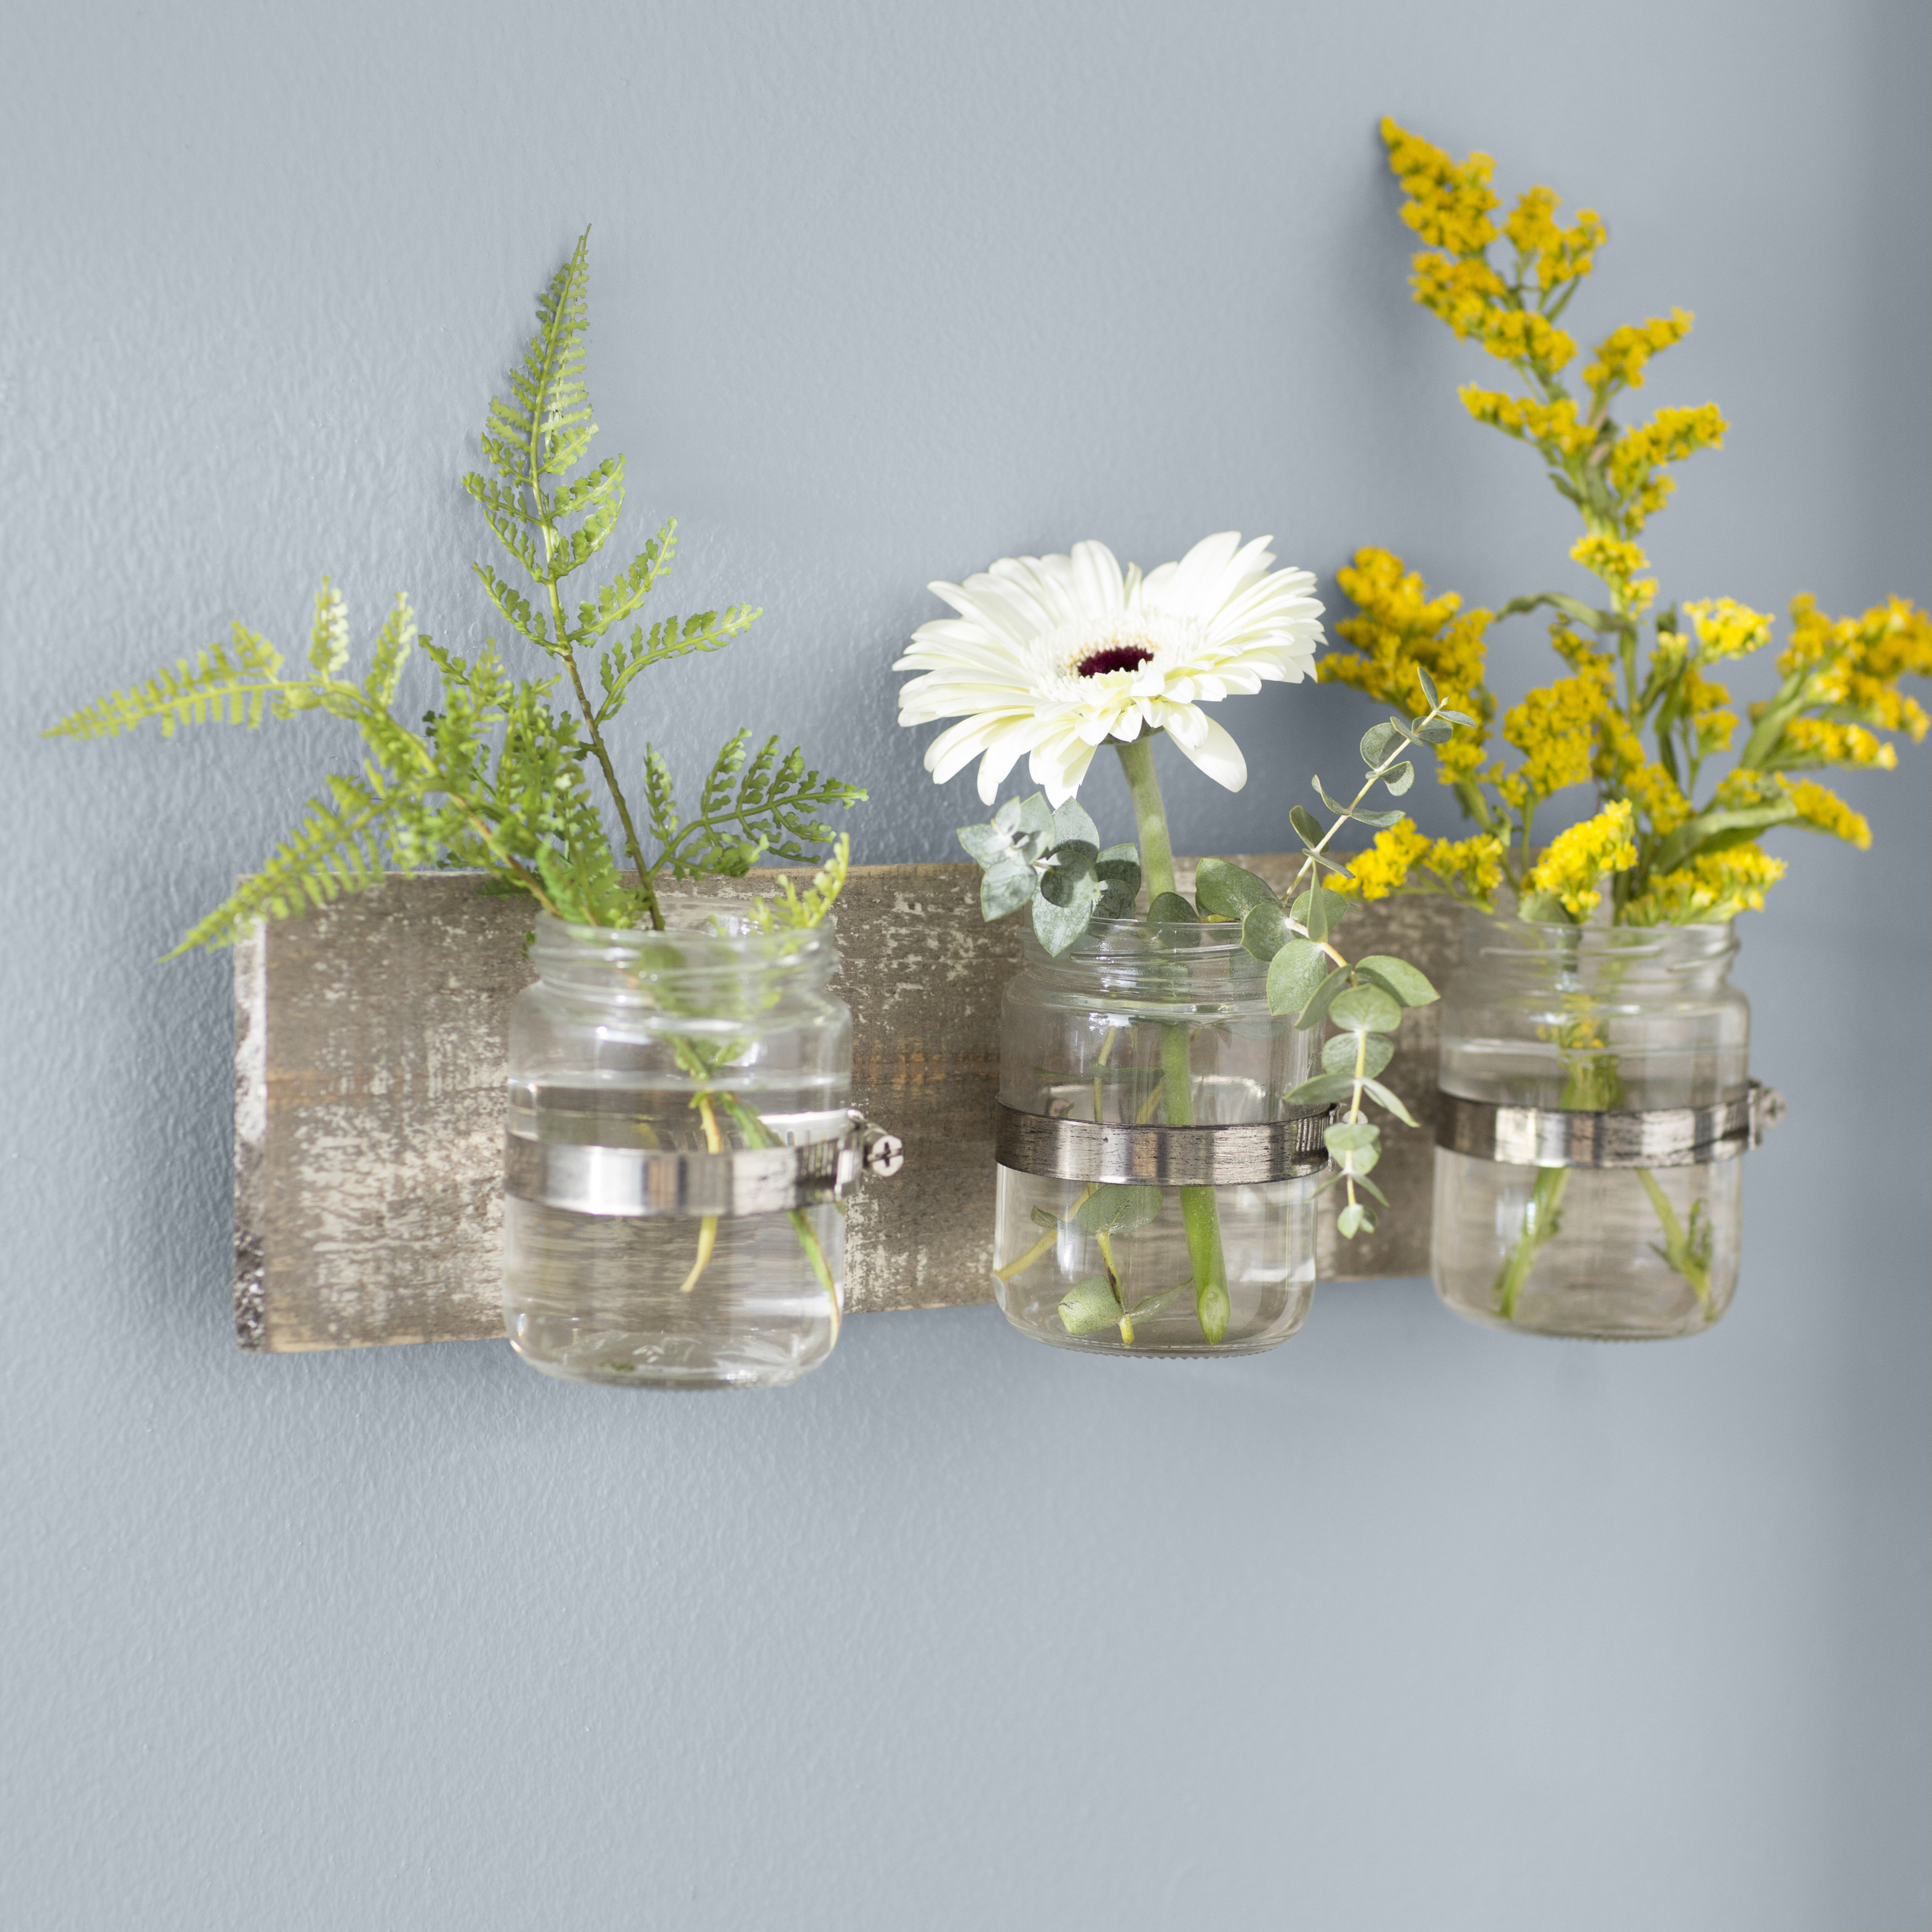 Wall Accents | Joss & Main throughout Farm Metal Wall Rack And 3 Tin Pot With Hanger Wall Decor (Image 26 of 30)